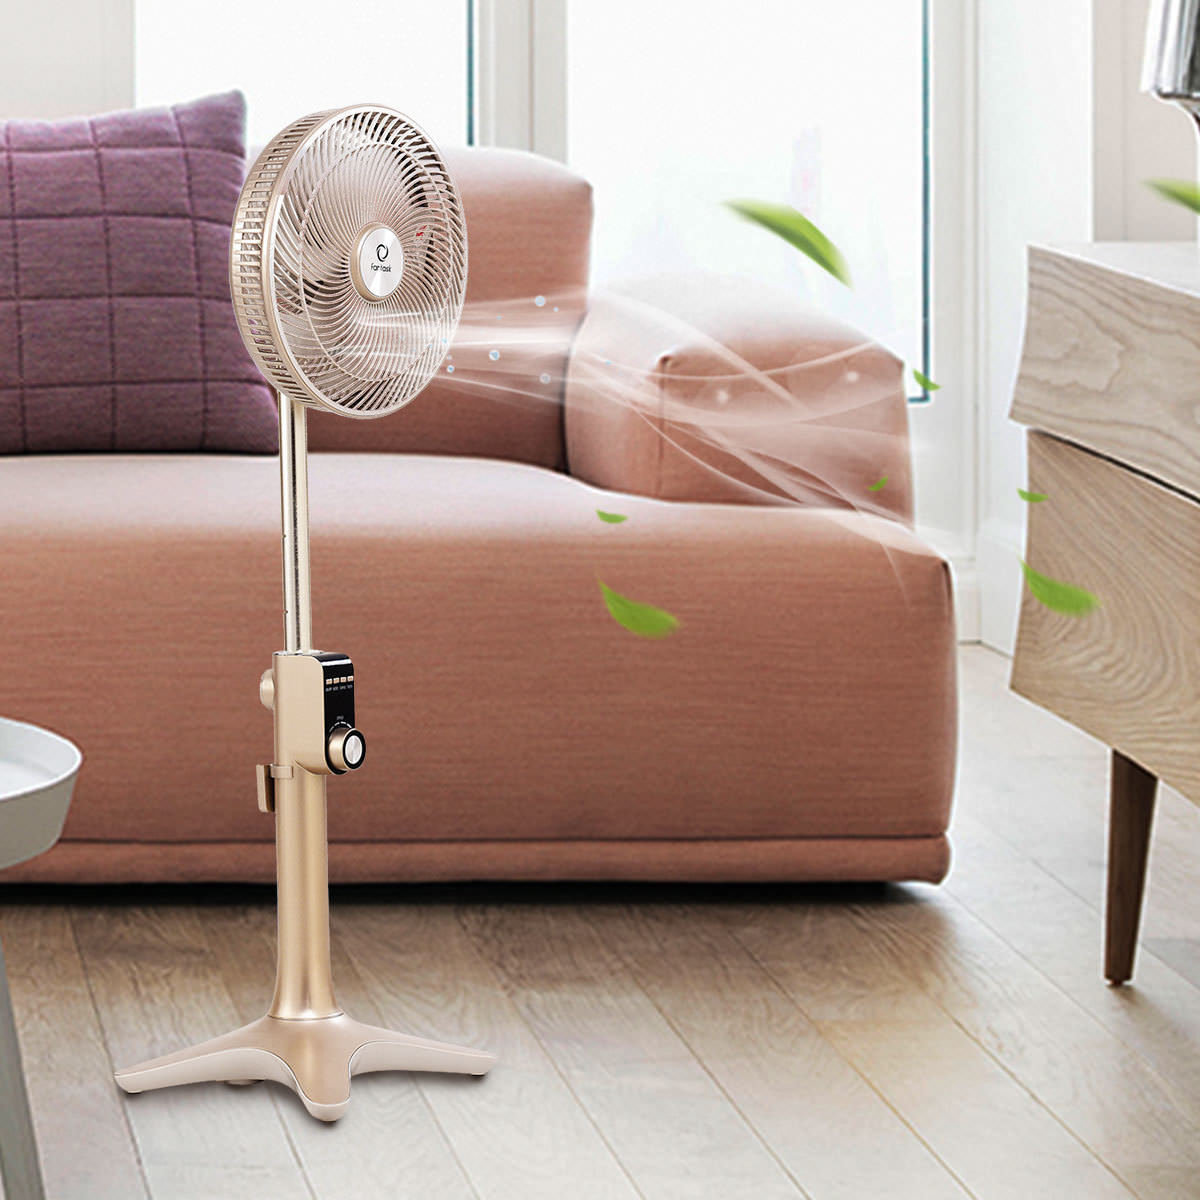 10'' Pedestal Fan 7 Blades 24-Speed 3 Mode Height Adjustable Remote Control - image 9 of 10